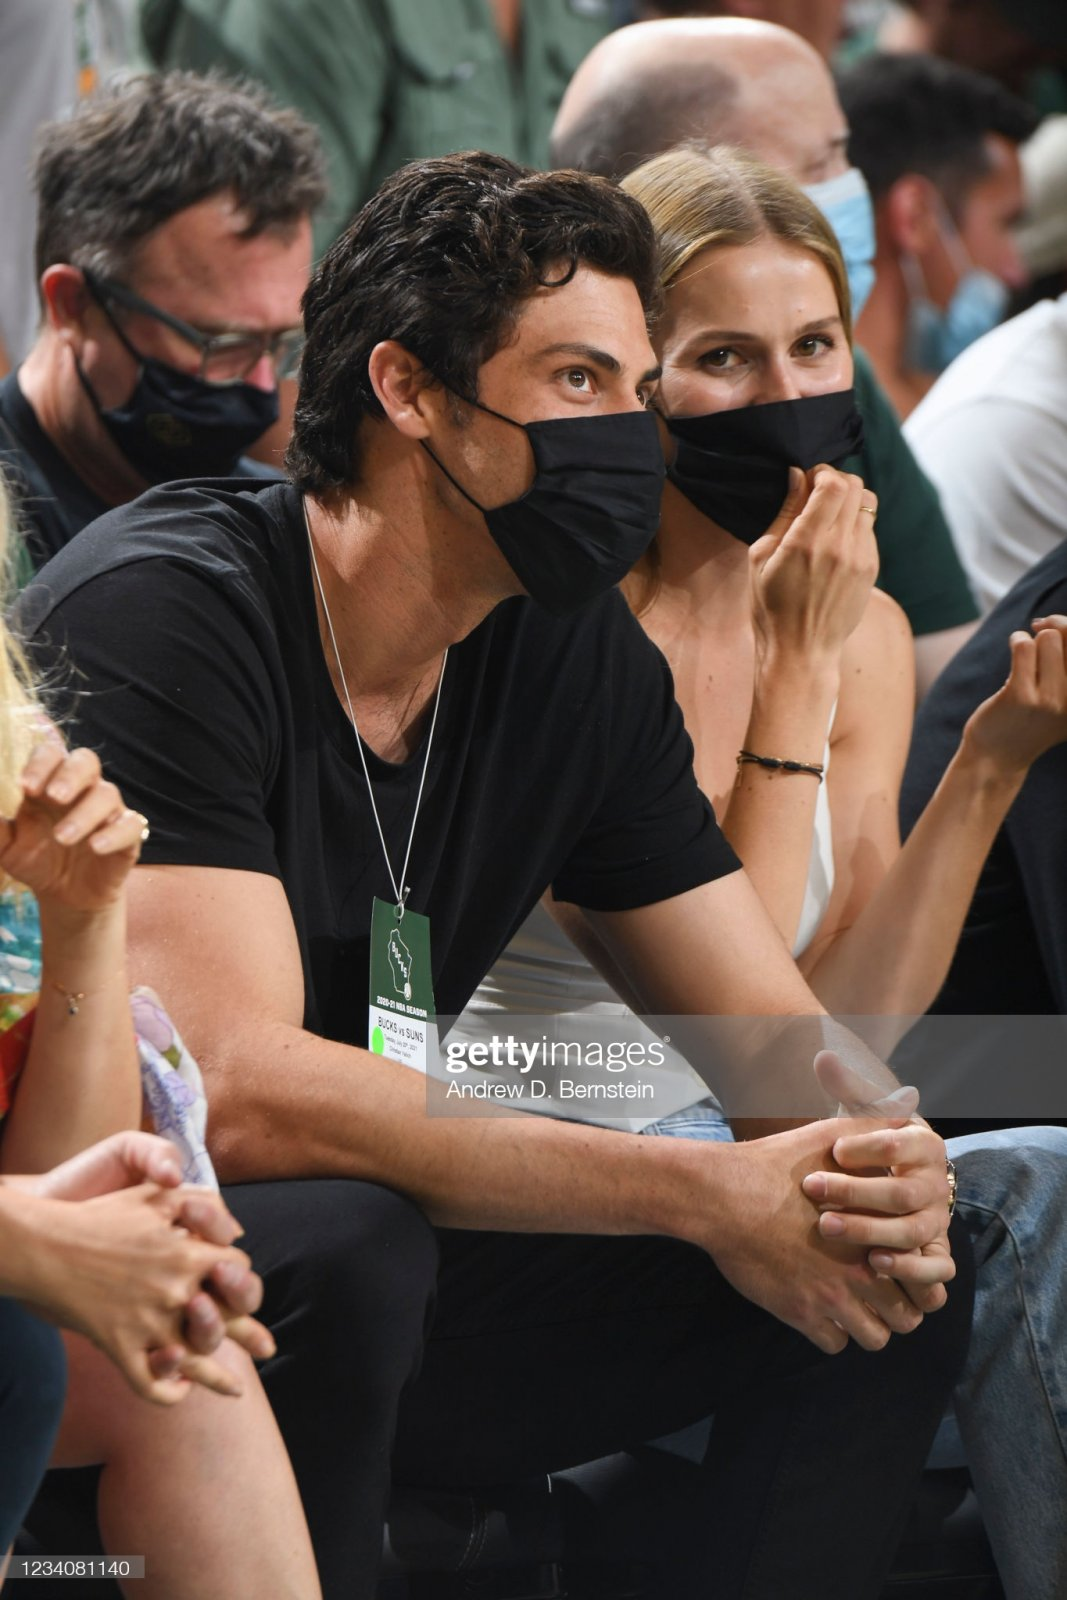 gettyimages-1234081140-2048x2048.jpg